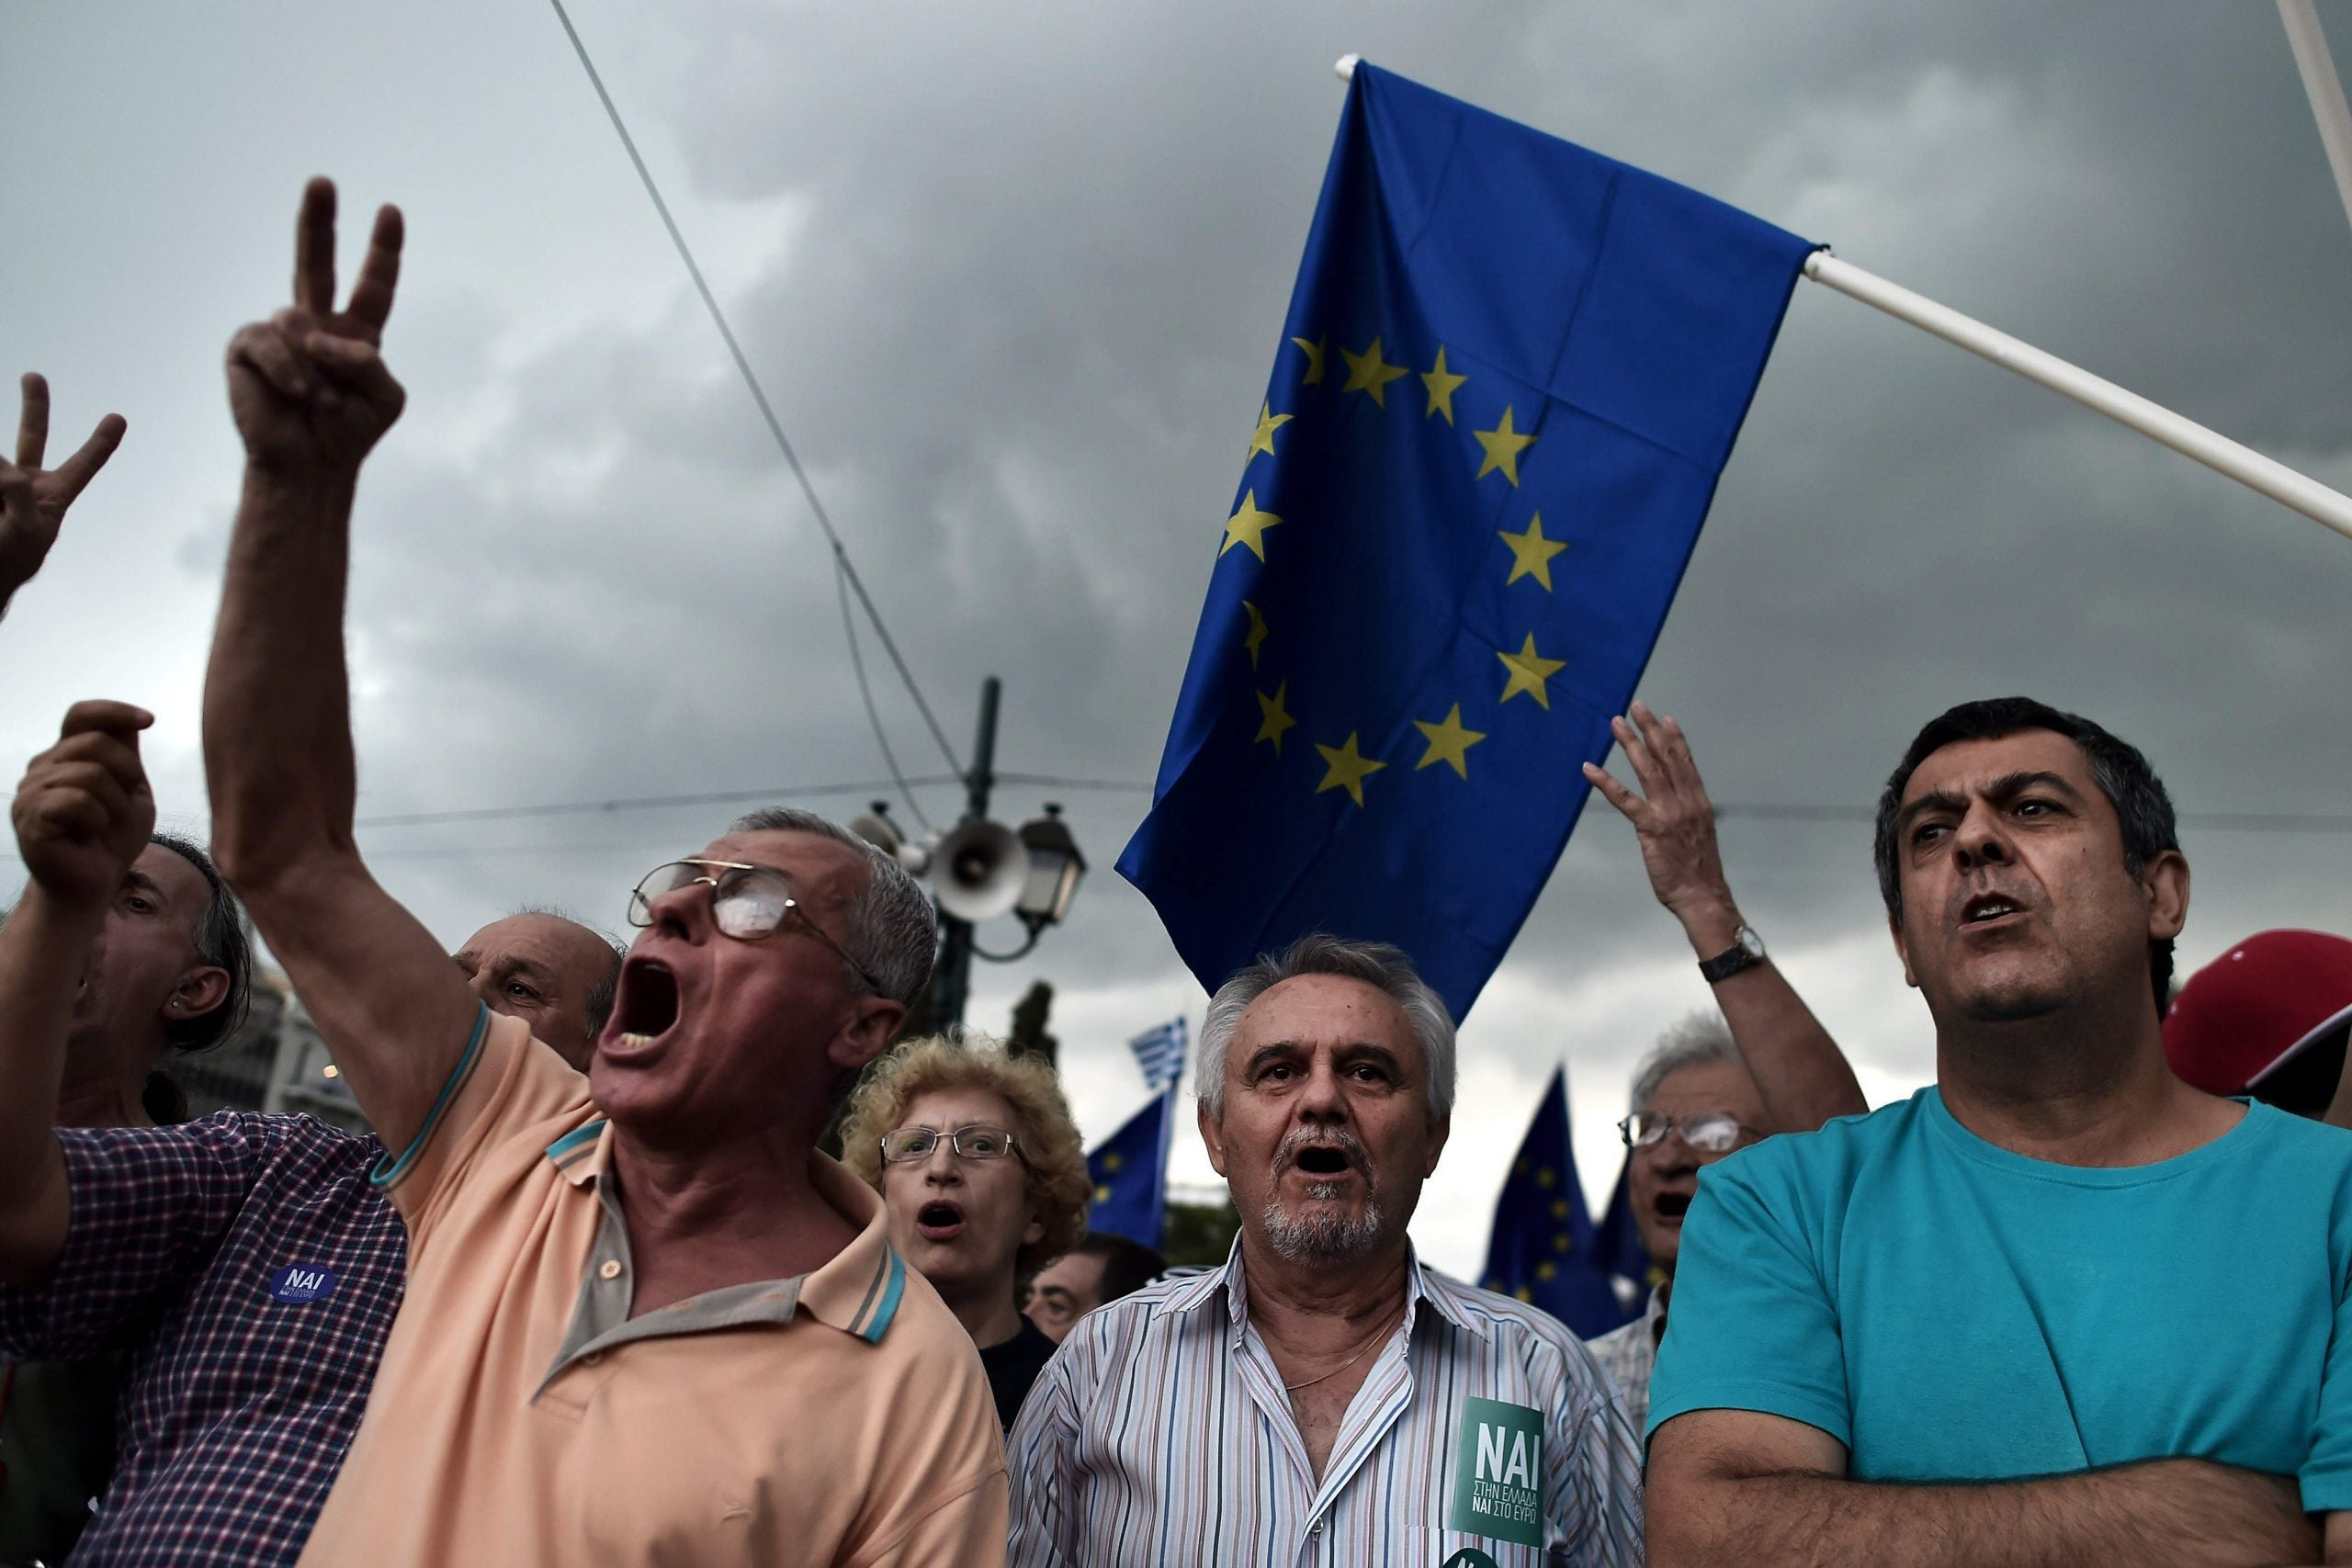 Owen Jones: The elites are determined to end the revolt against austerity in Greece